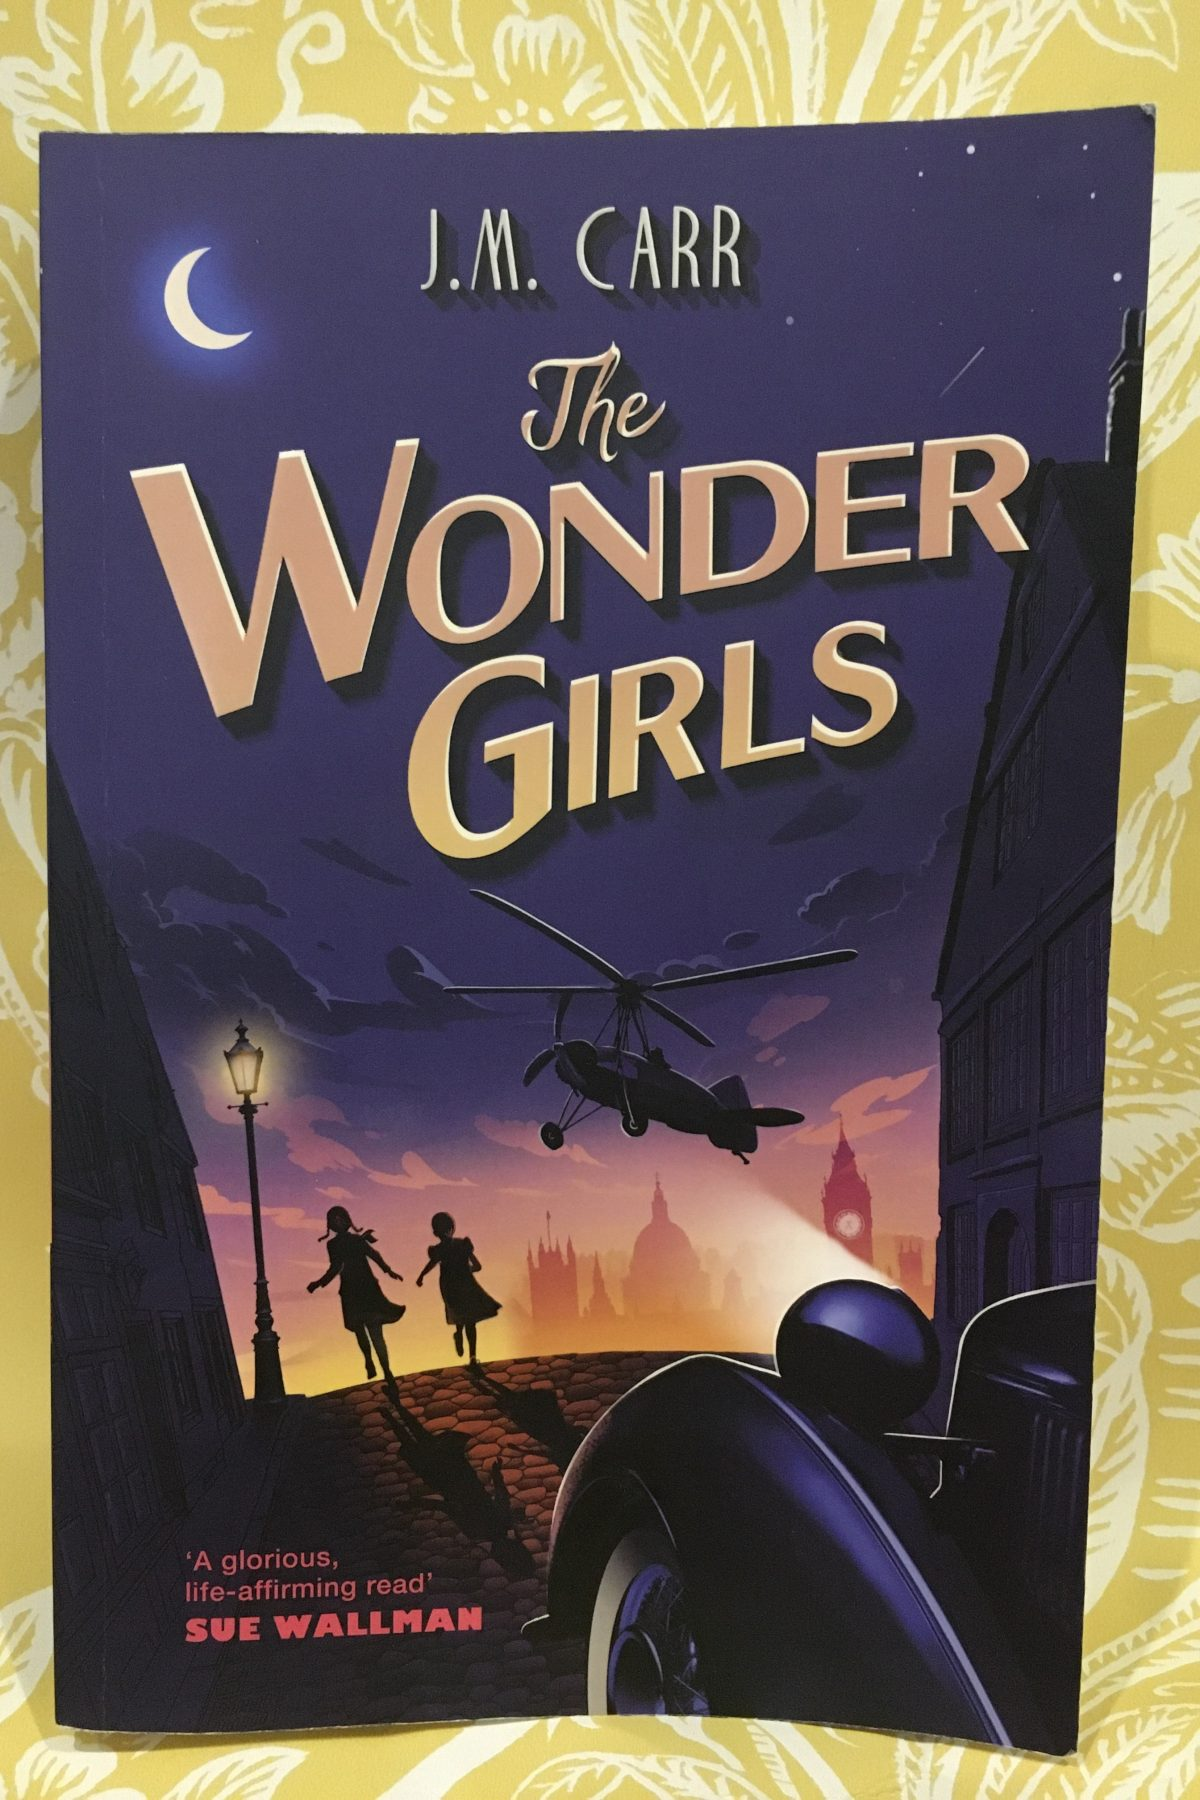 Book review: The Wonder Girls by J M Carr